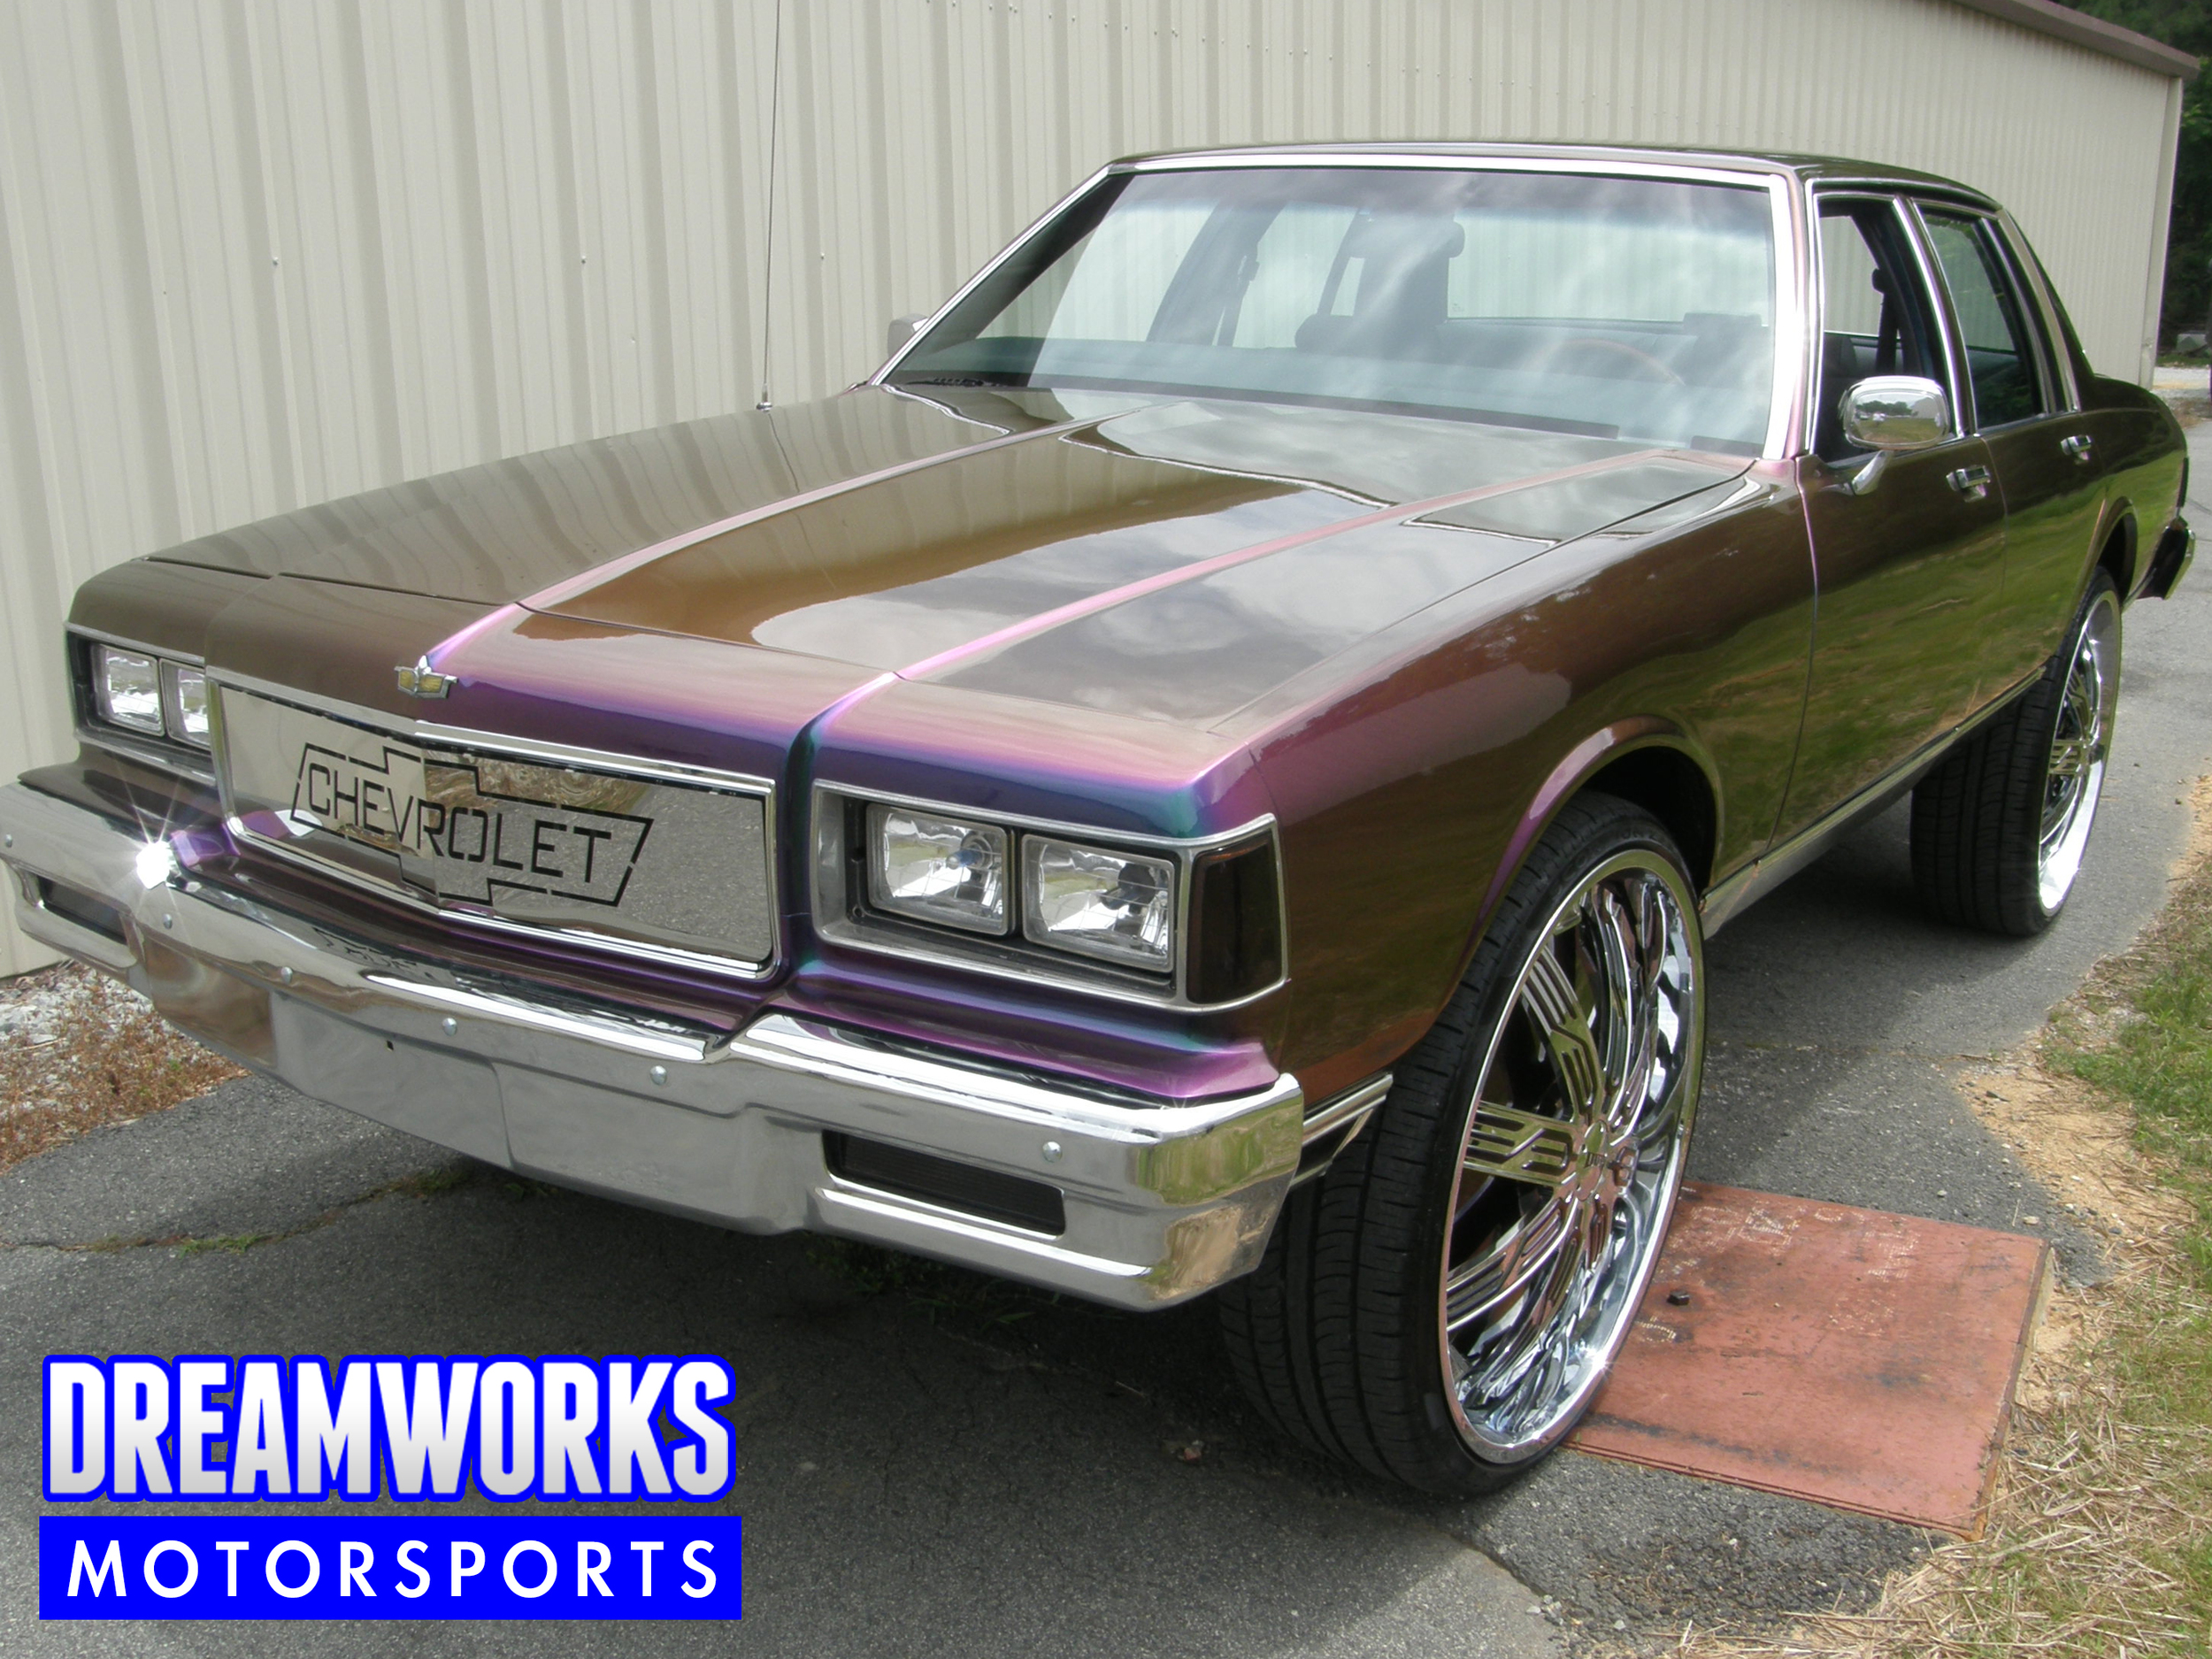 86-Chevrolet-Caprice-DUB-Tycoons-Dreamworks-Motorsports-3.jpg